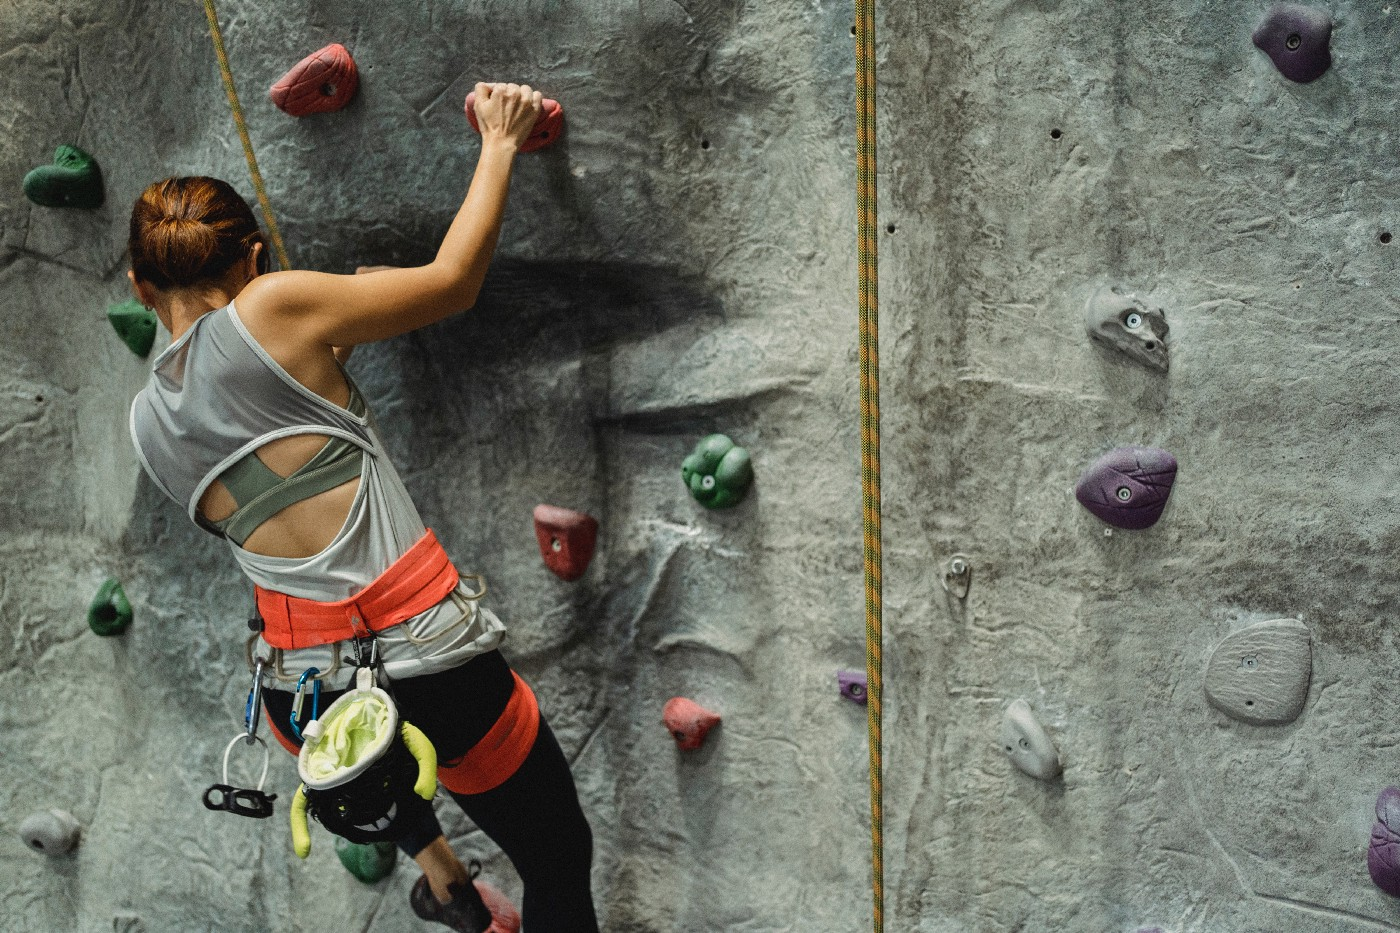 Unidentified person going up a climbing wall.